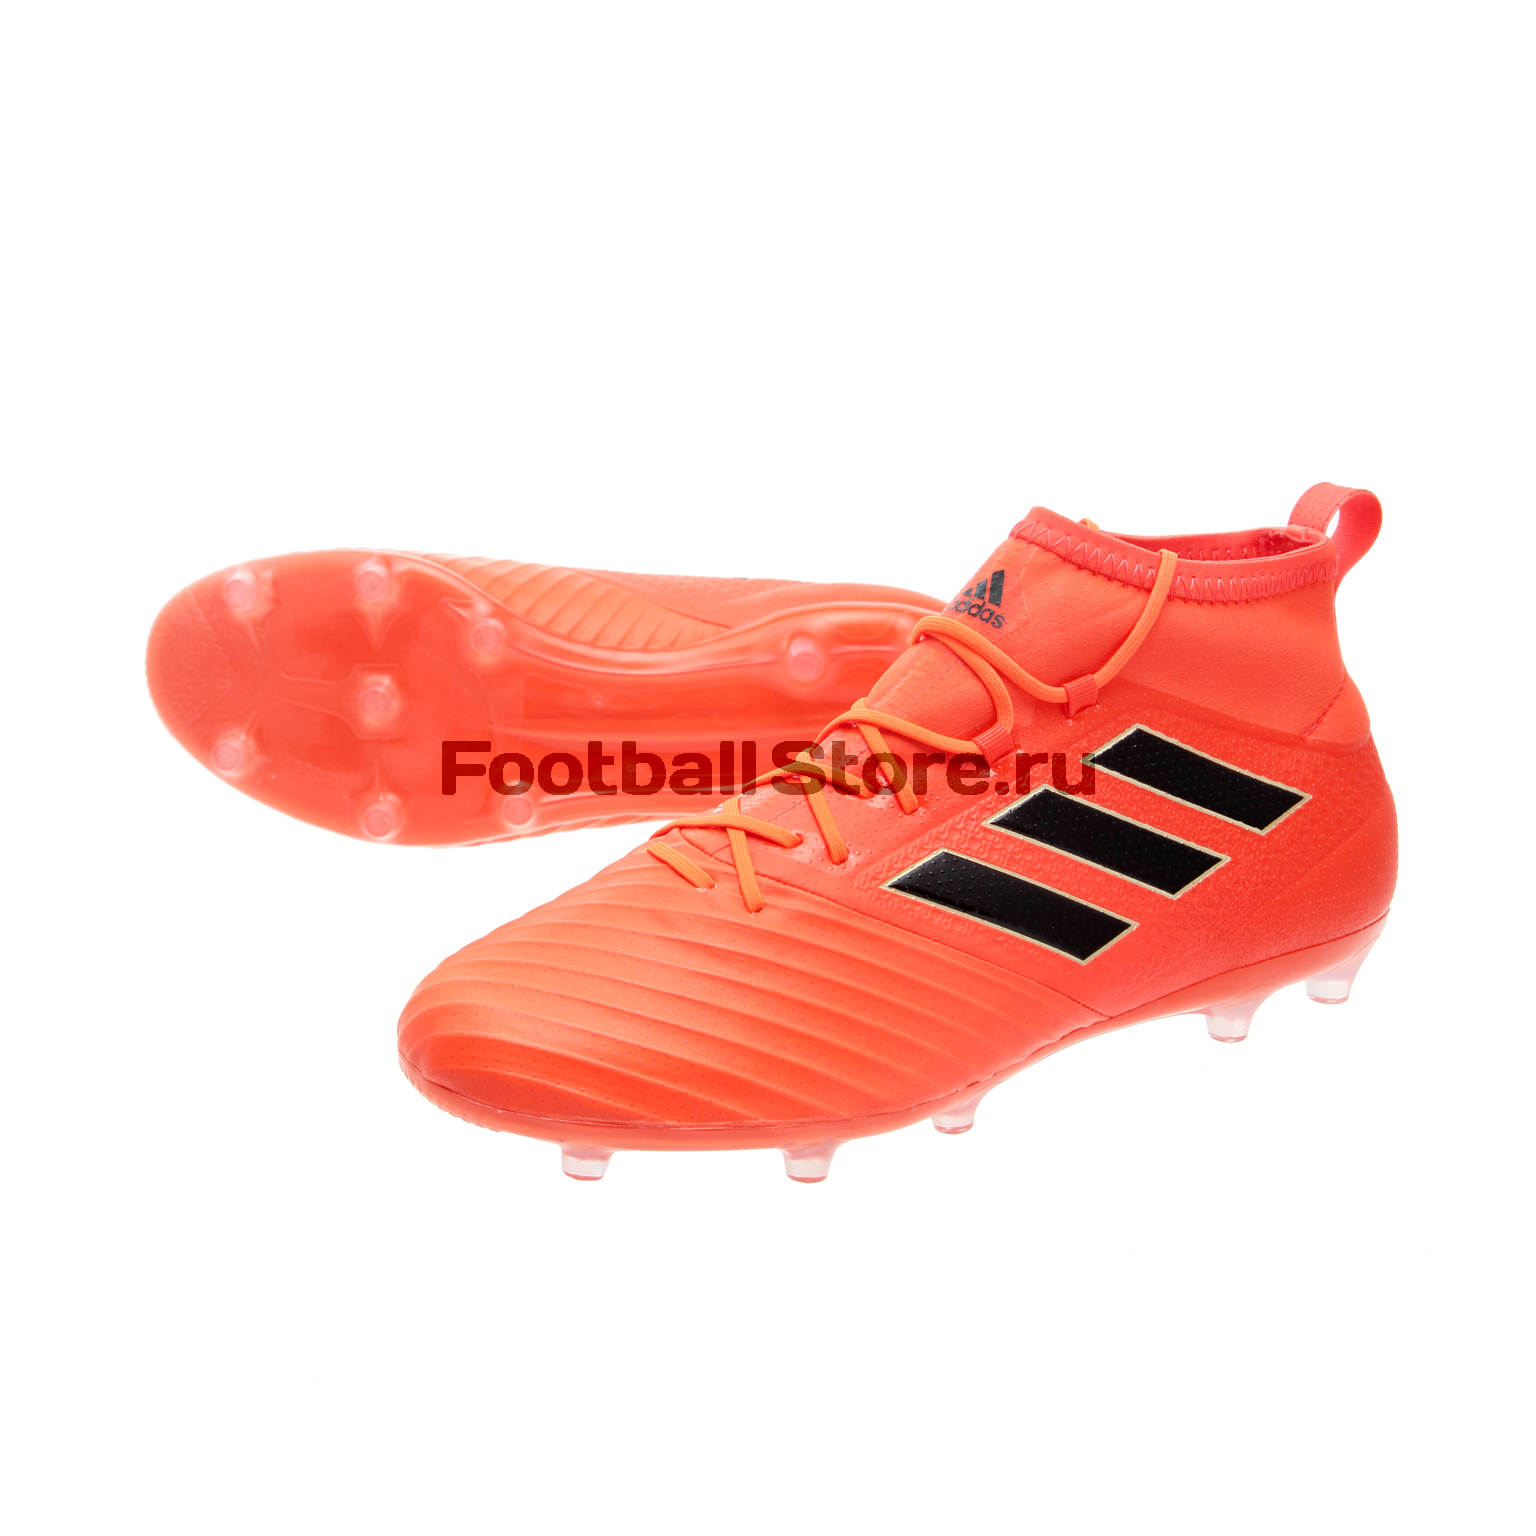 Бутсы Adidas Ace 17.2 FG BY2190 детские бутсы nike бутсы nike jr phantom 3 elite df fg ah7292 081